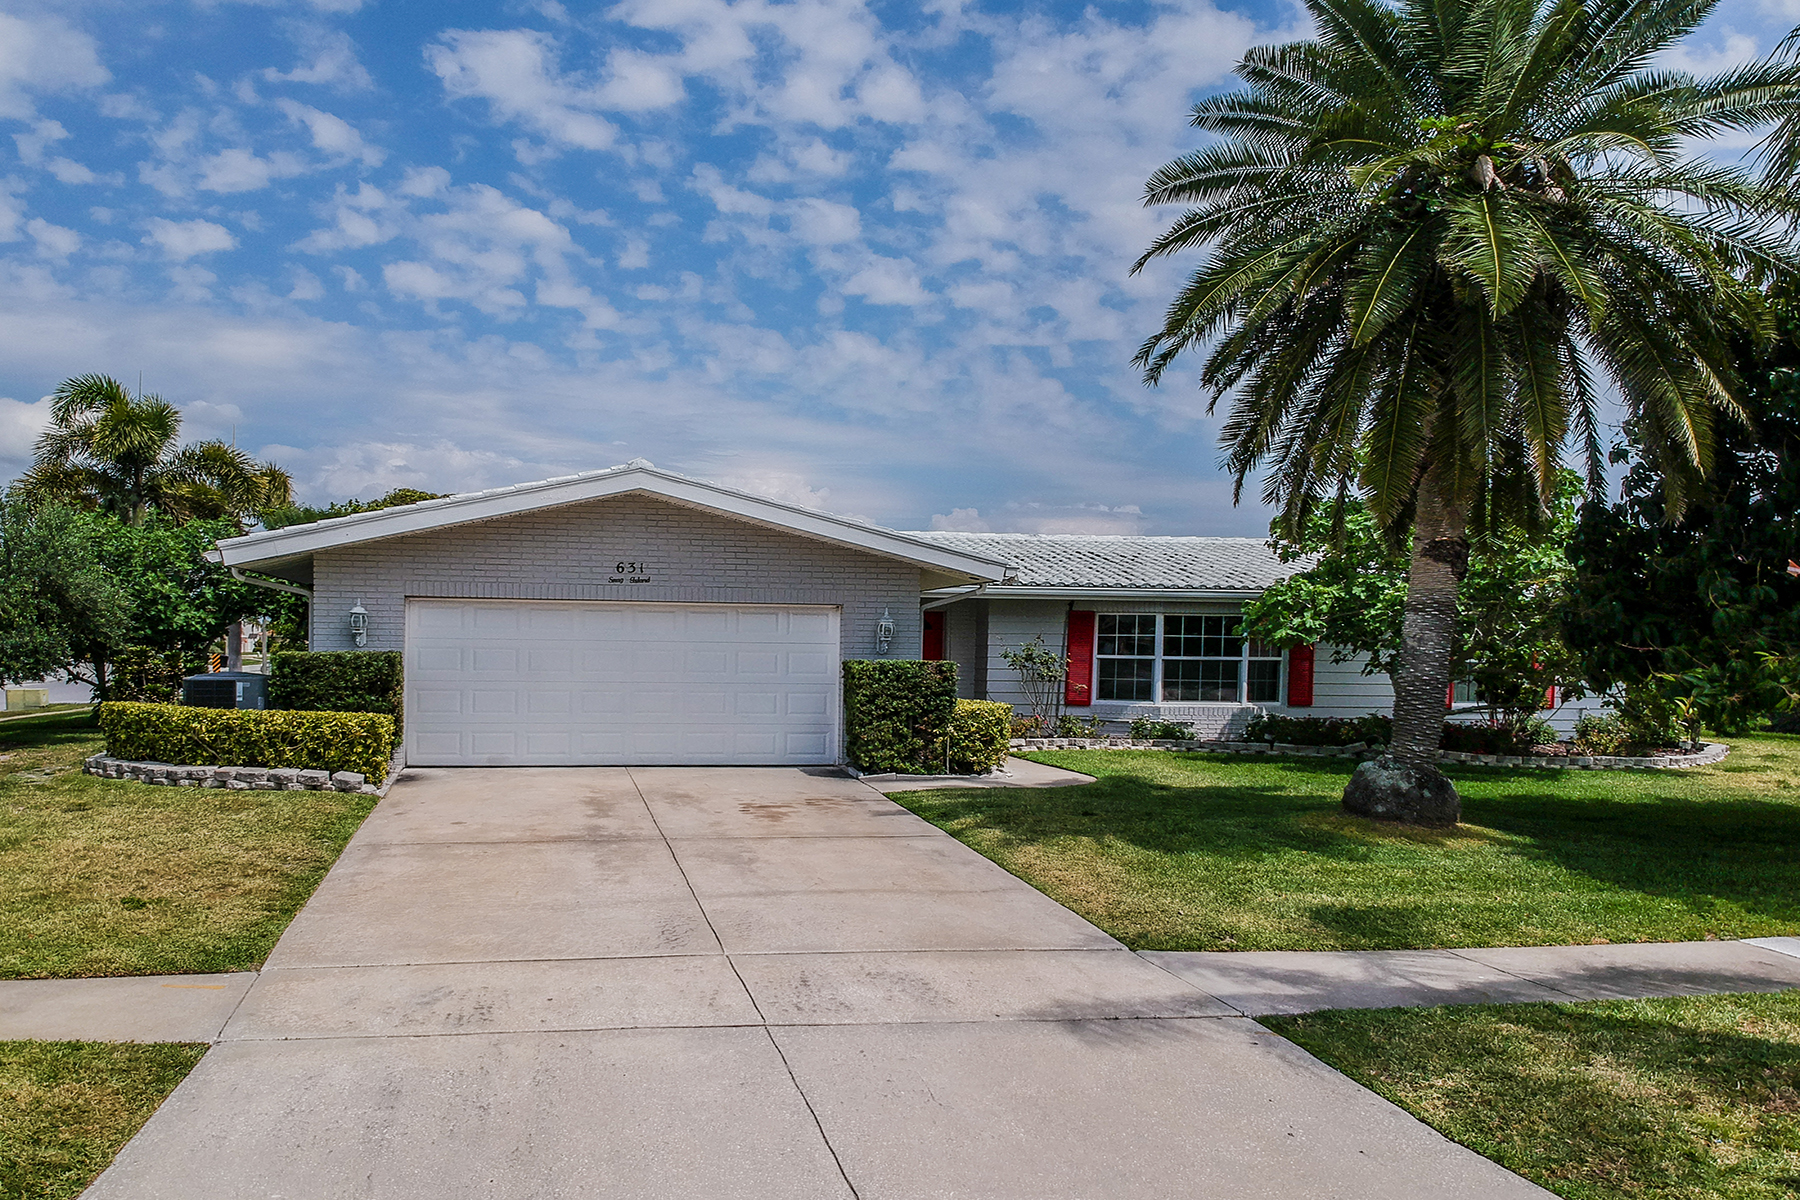 Single Family Homes for Sale at CLEARWATER 631 Snug Is, Clearwater, Florida 33767 United States